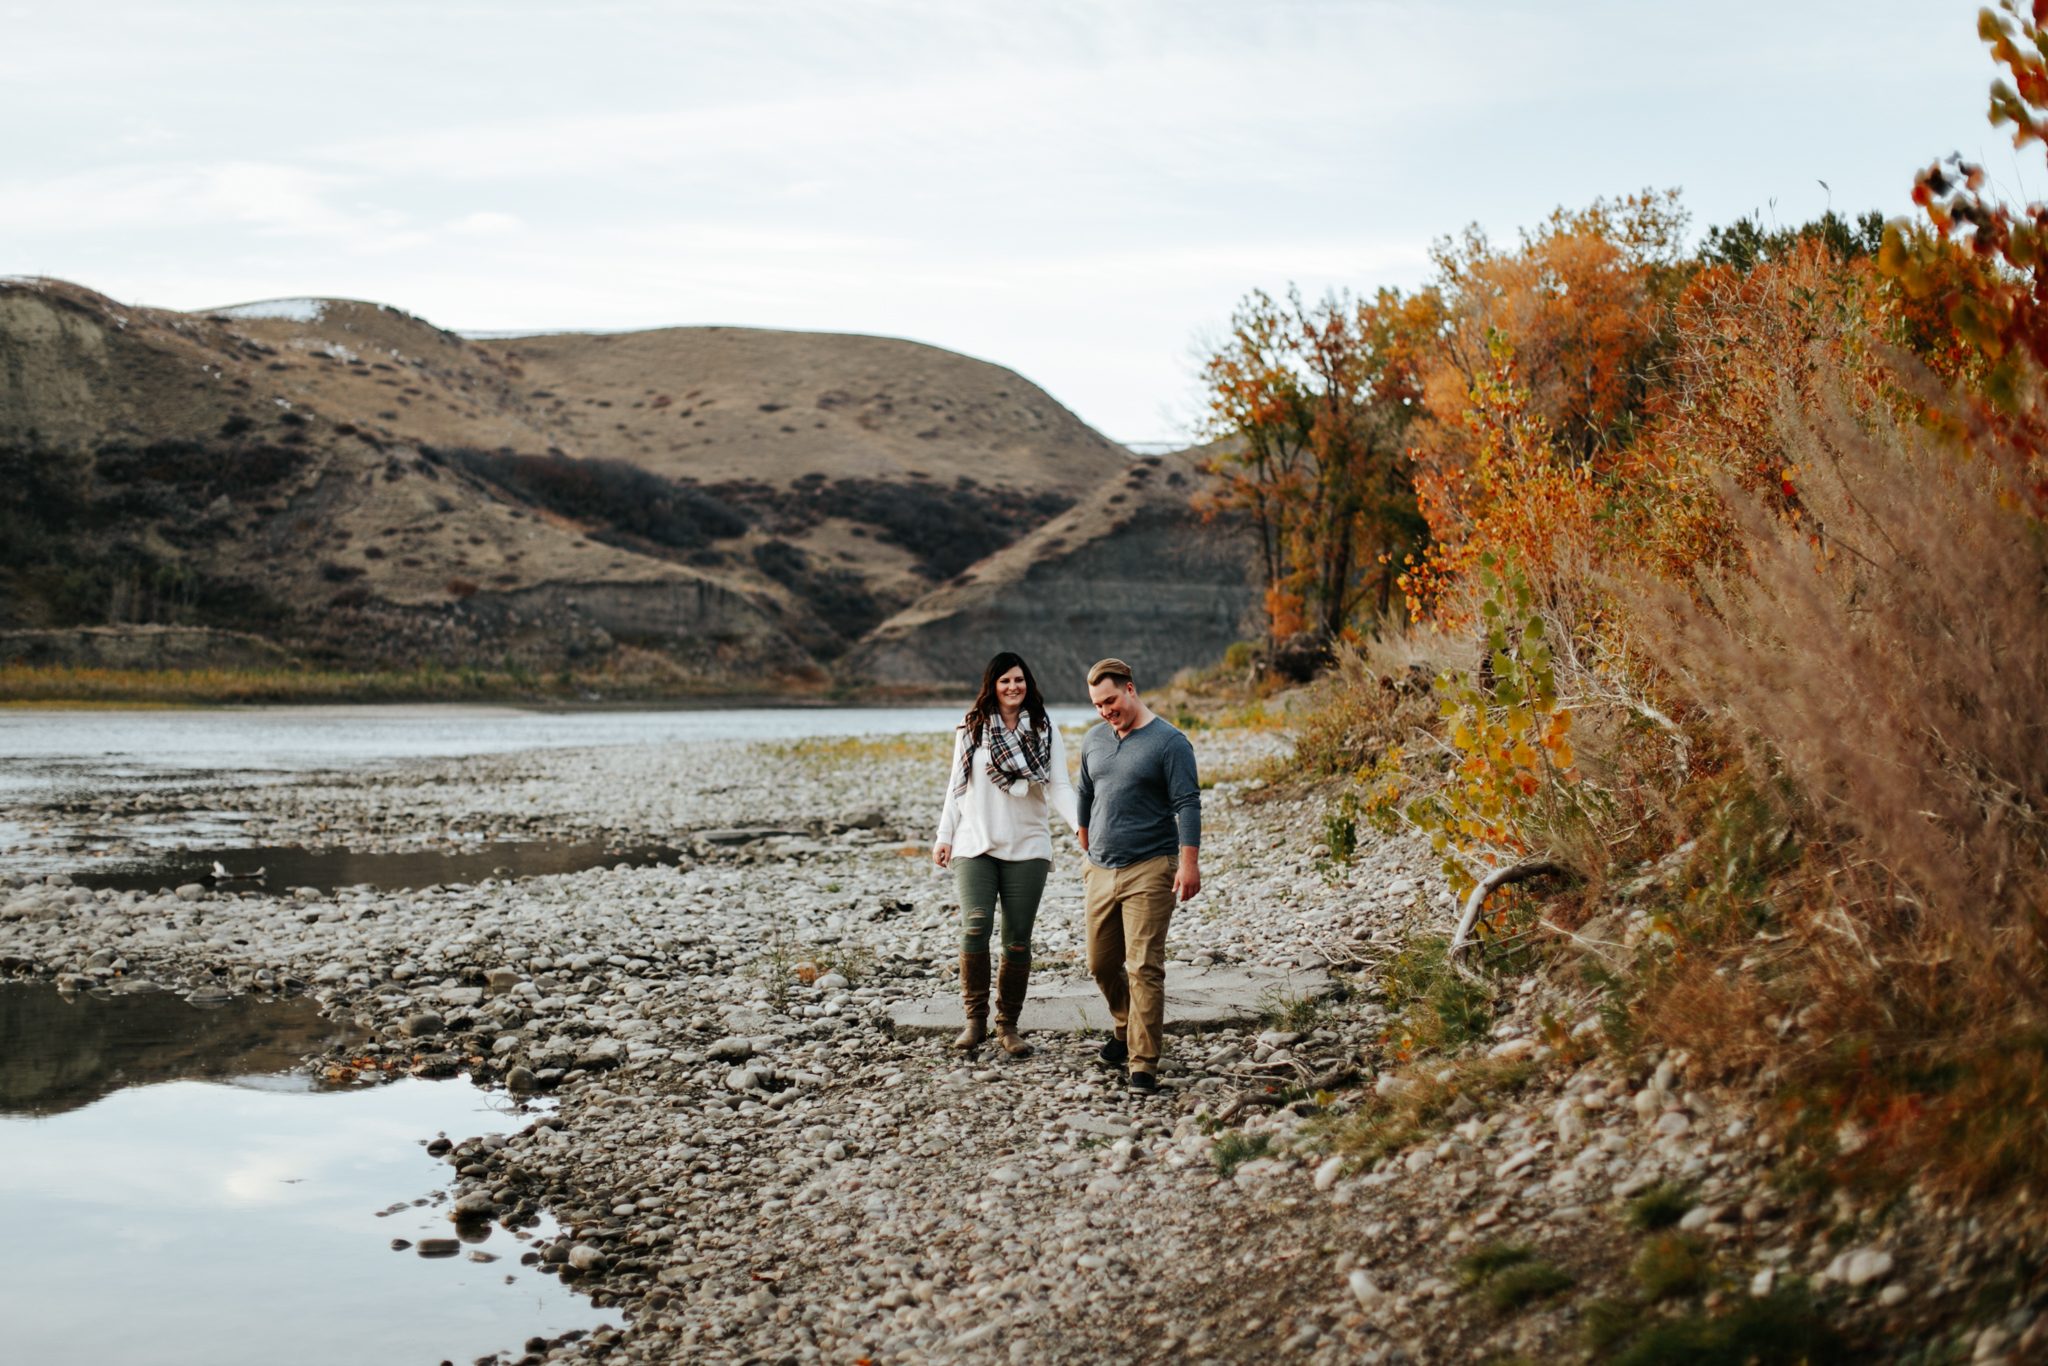 lethbridge-photographer-love-and-be-loved-photography-christy-bryan-fall-autumn-engagement-photo-image-picture-44.jpg